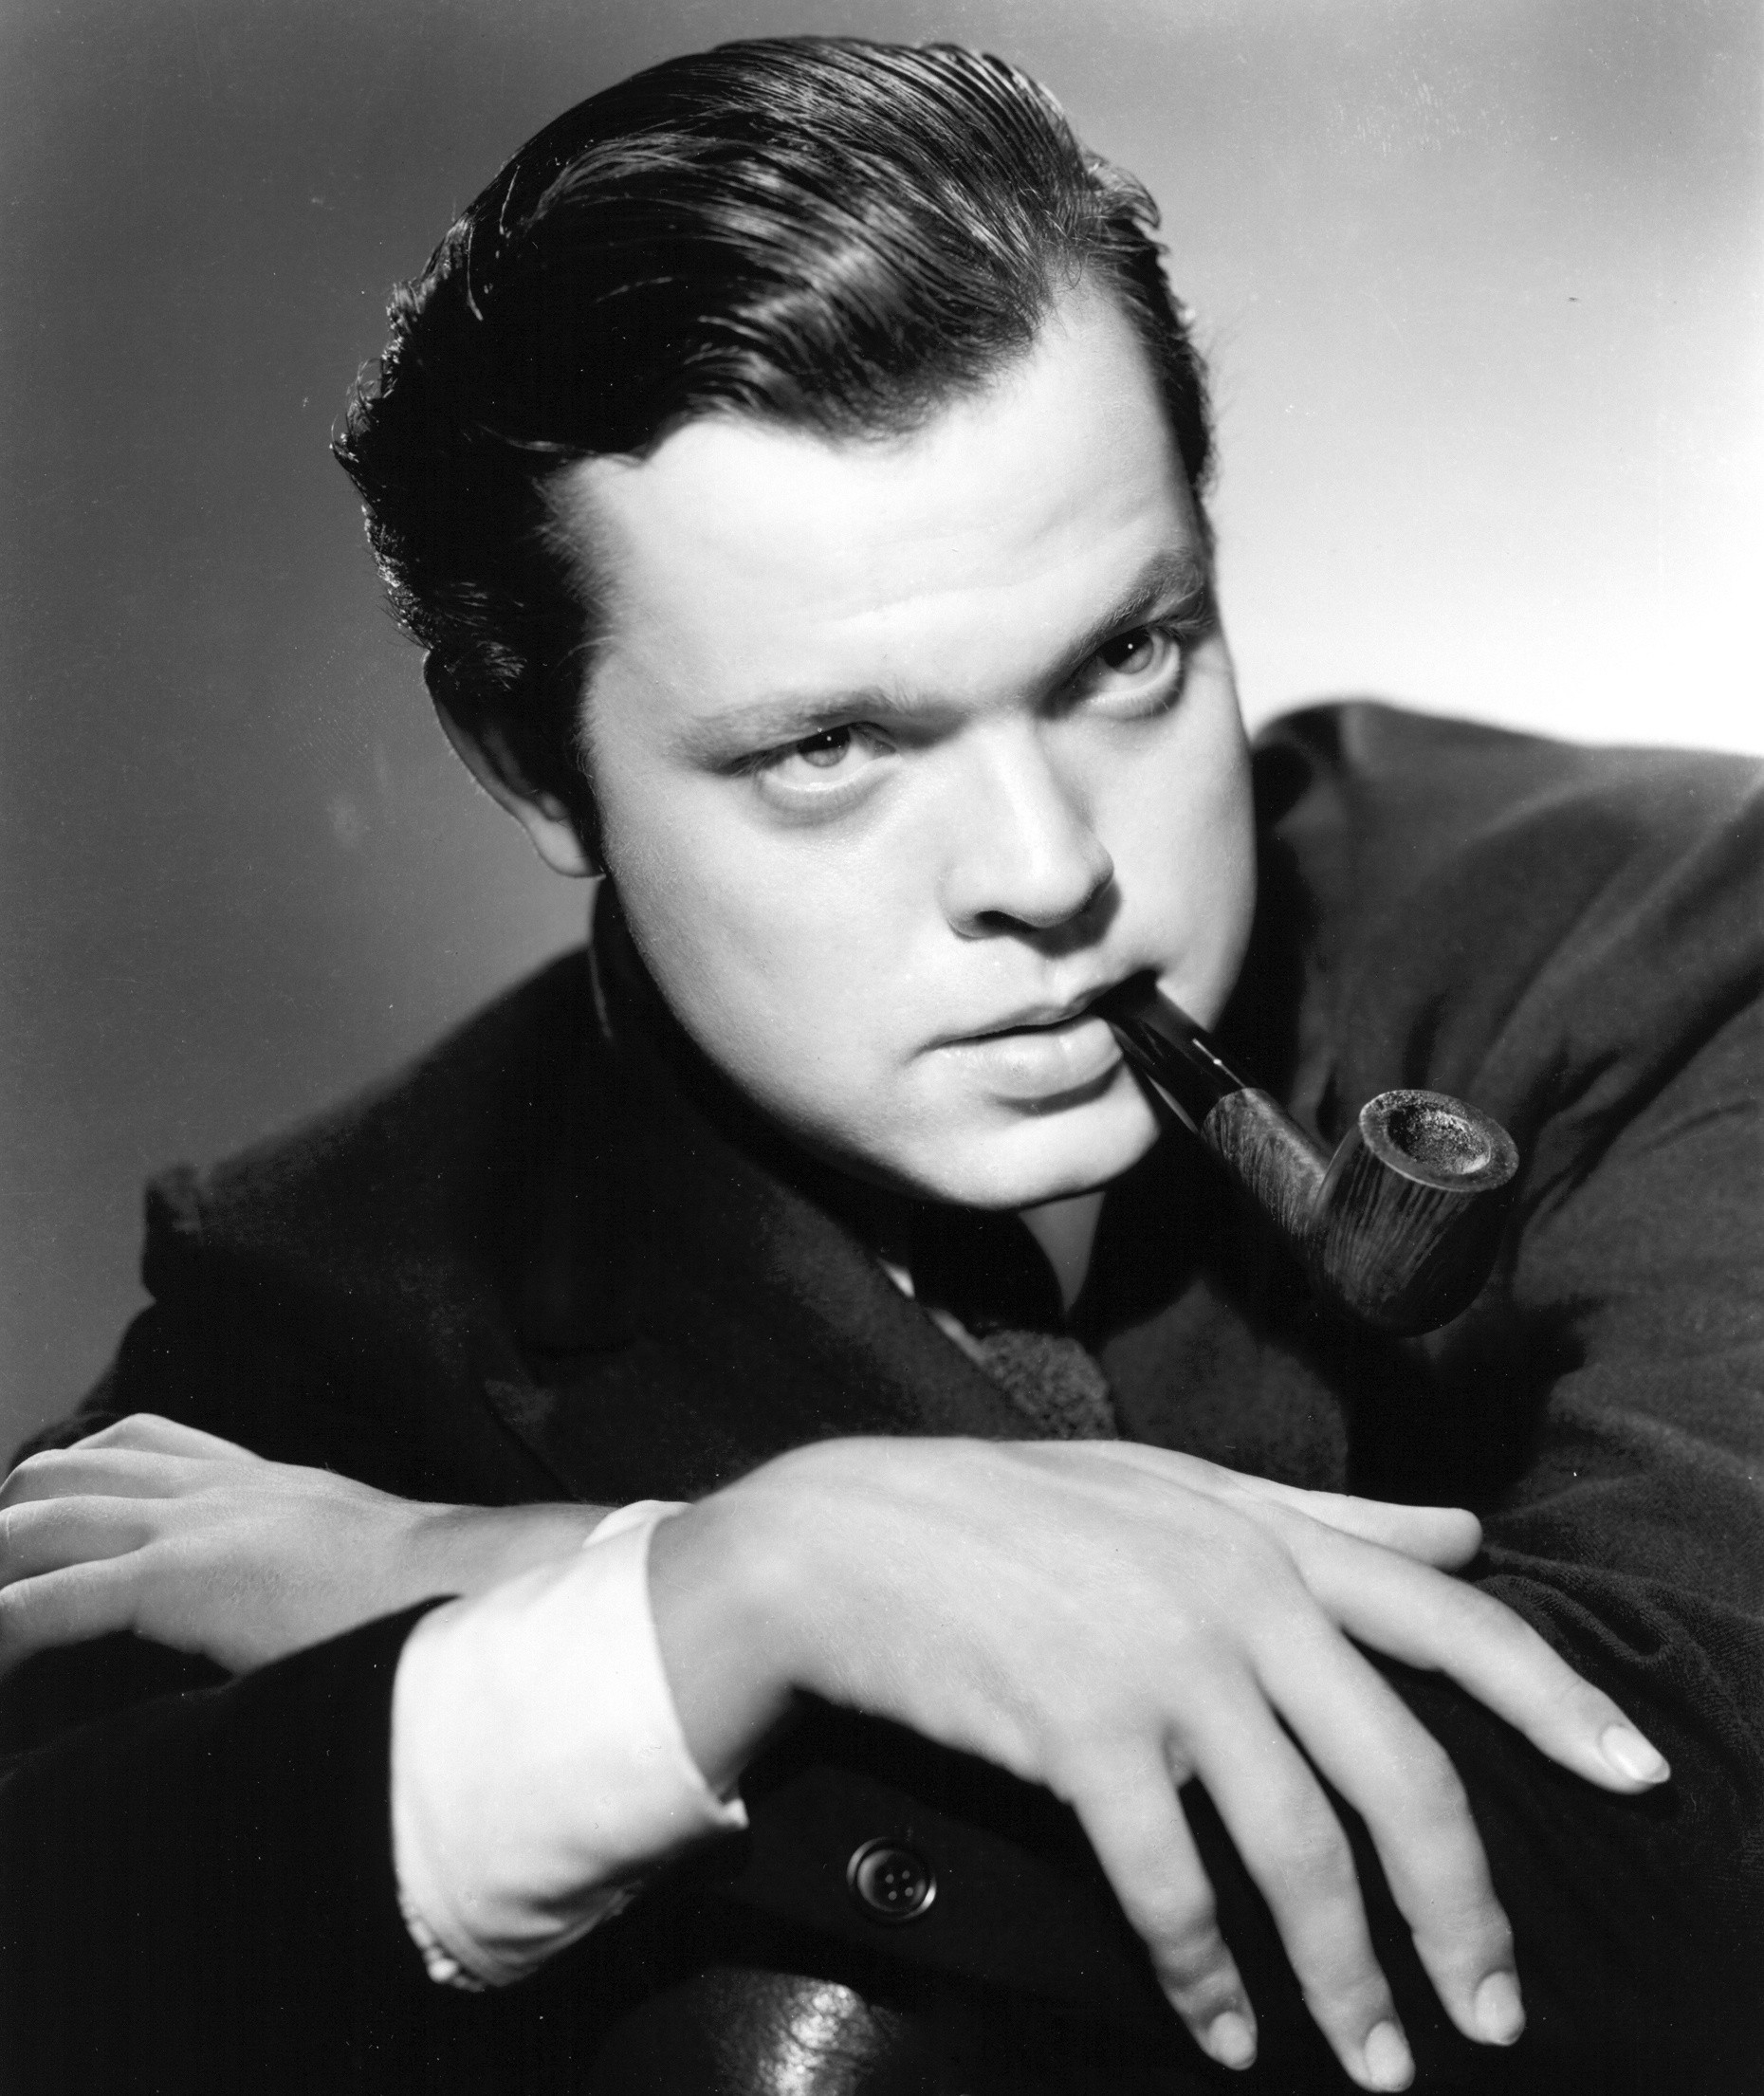 citizen kane 1941  photo of orson welles